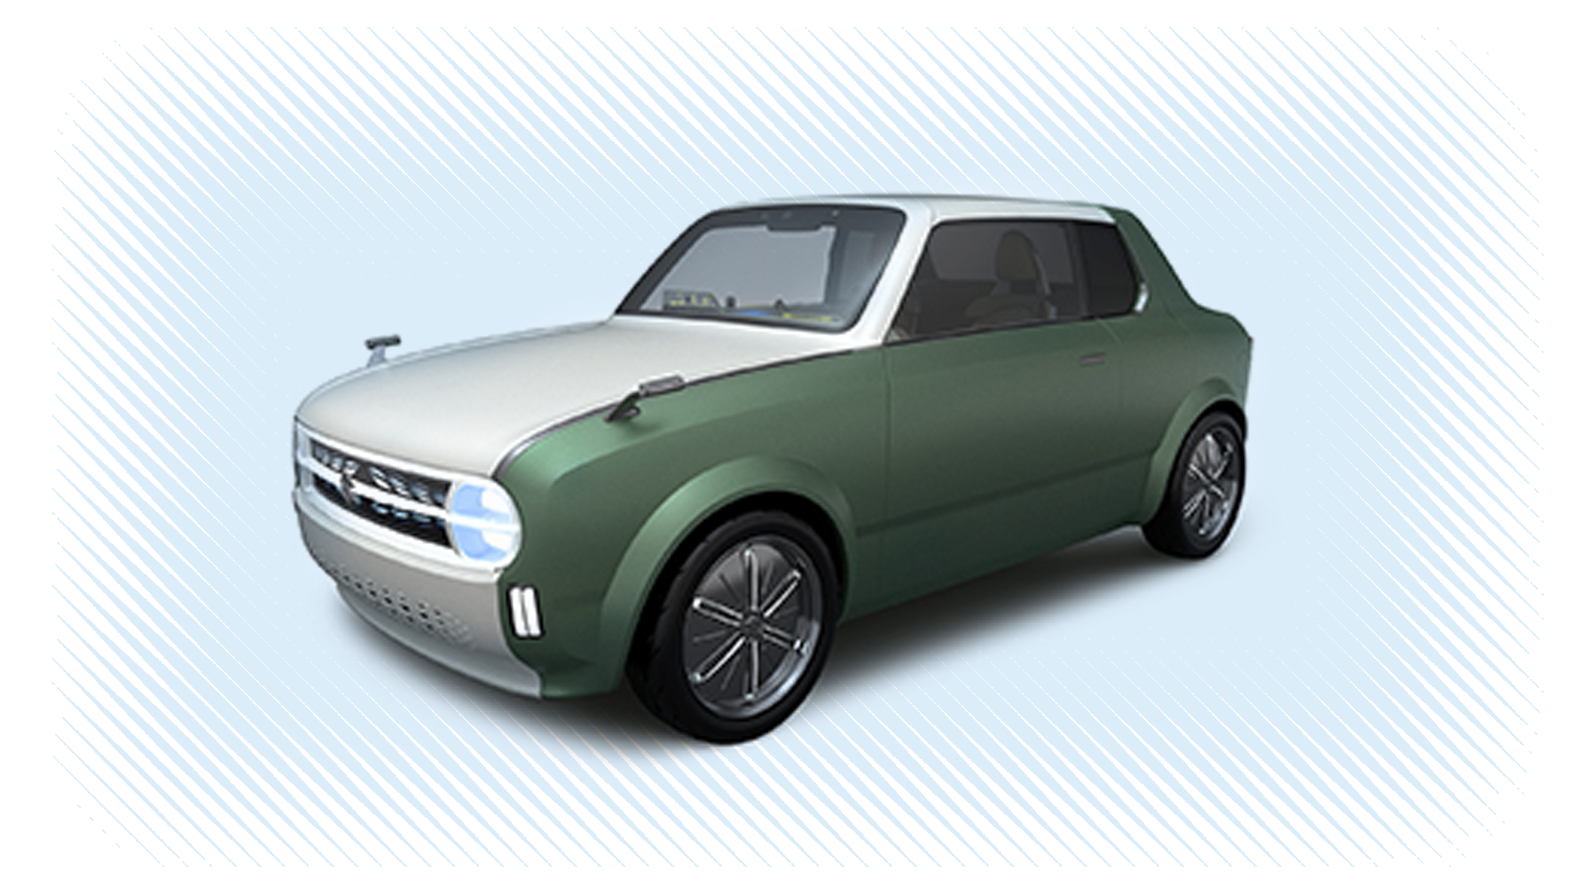 Suzuki Imagines A World Of Cars Too Good For Us